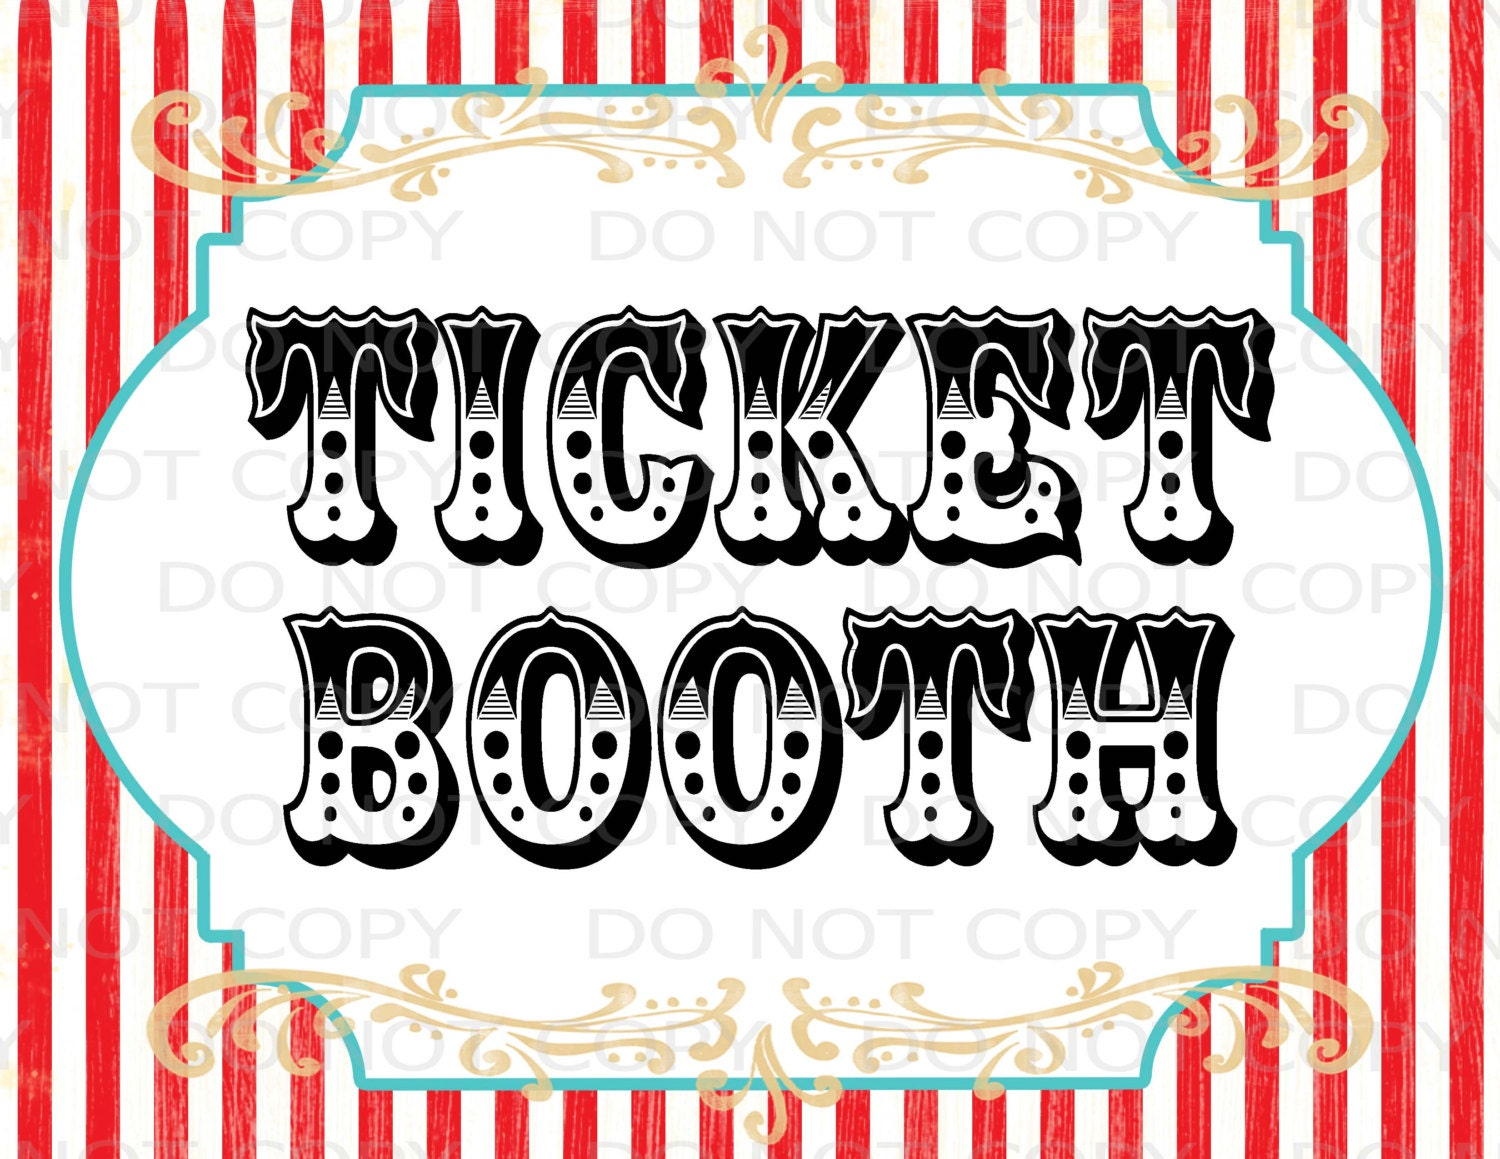 Printable DIY Vintage Circus Ticket Booth Table sign